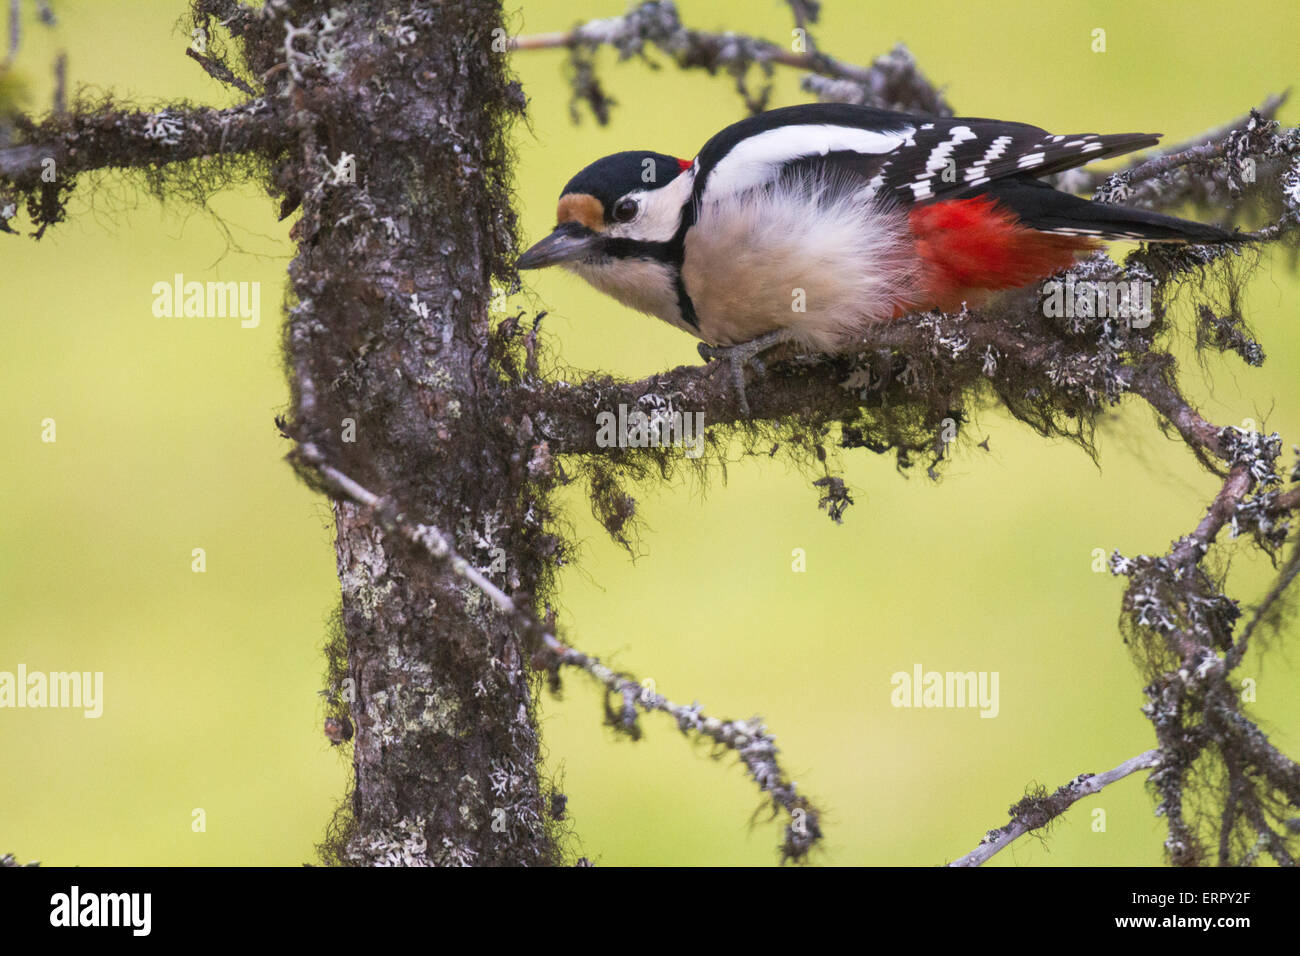 Great spotted woodpecker, Dendrocopos major, sitting in a spruce in Niilivara, Swedish lapland - Stock Image